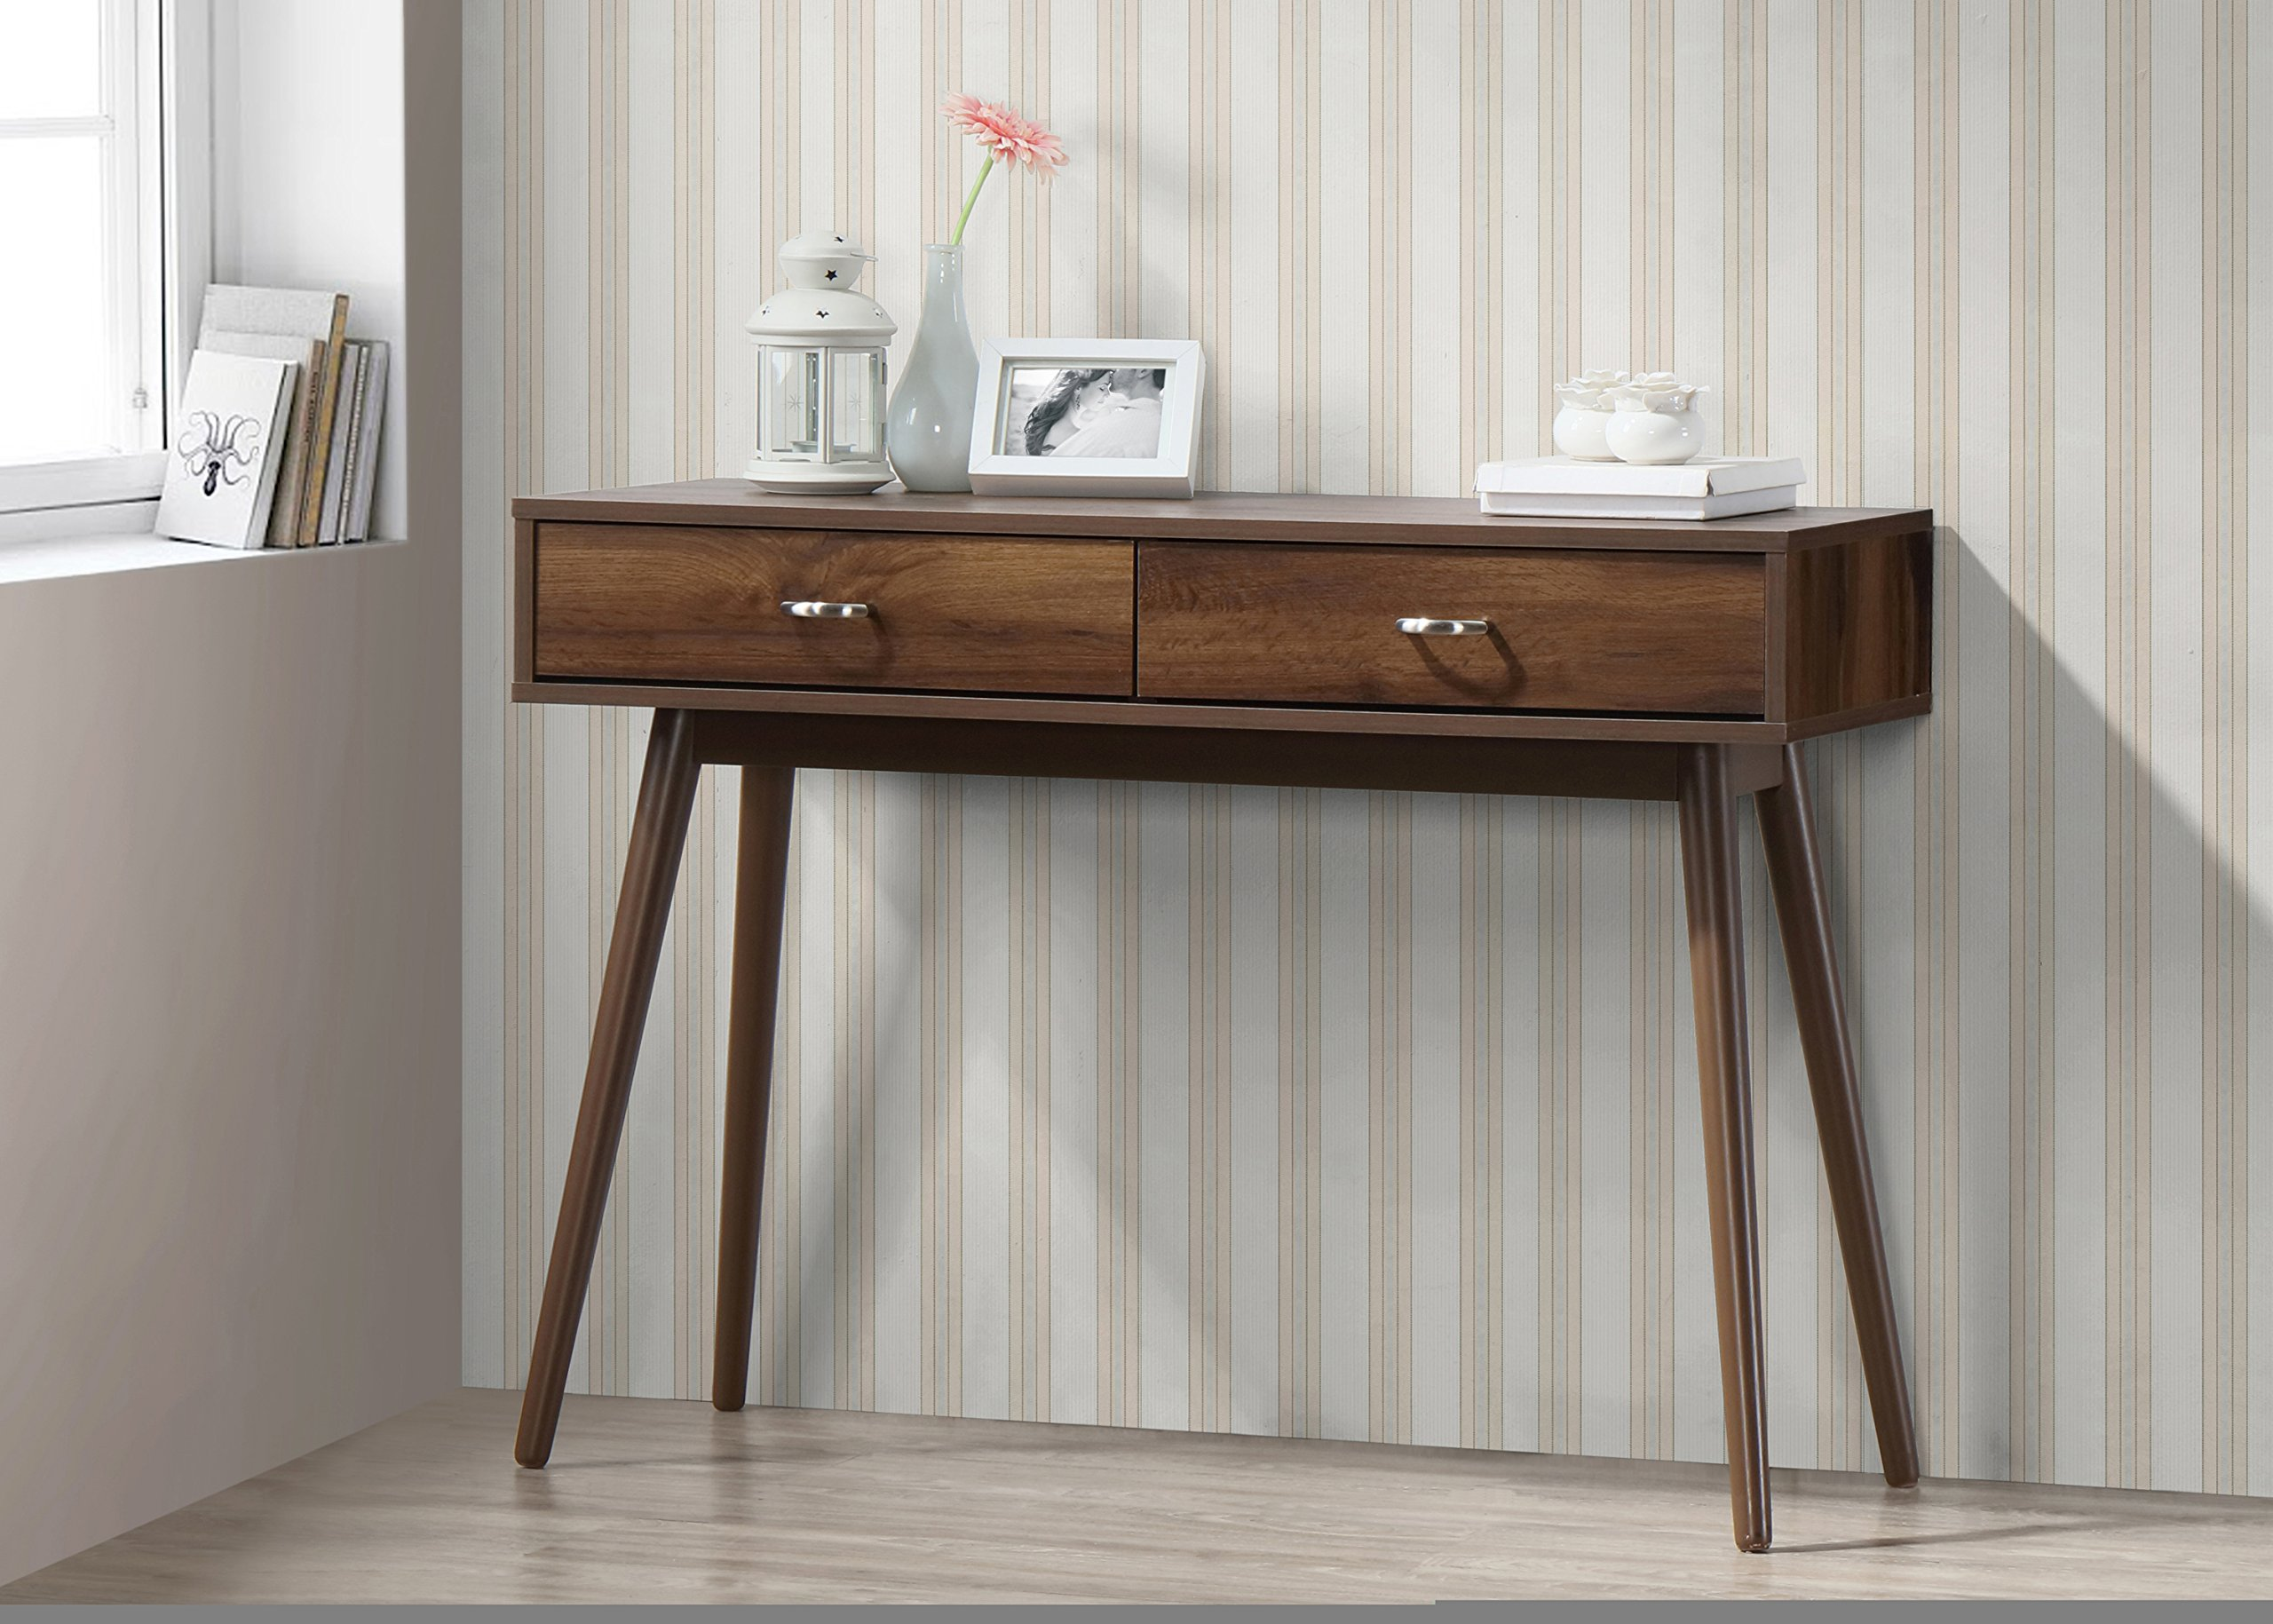 Midcentury Desk in Walnut Finish by 4D Concepts